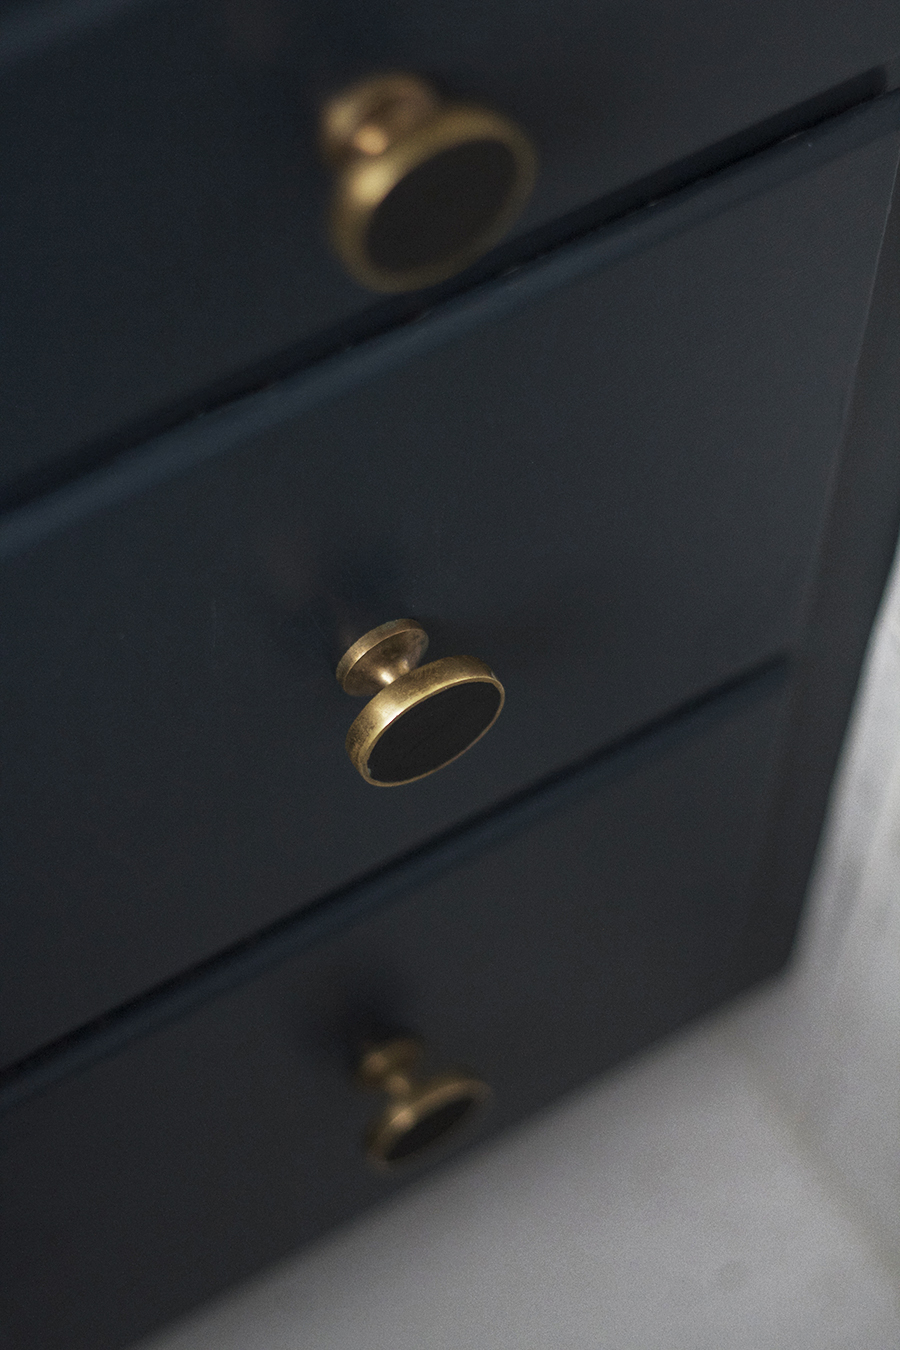 Using Amy Howard Paint to Give Brass Hardware a New Life